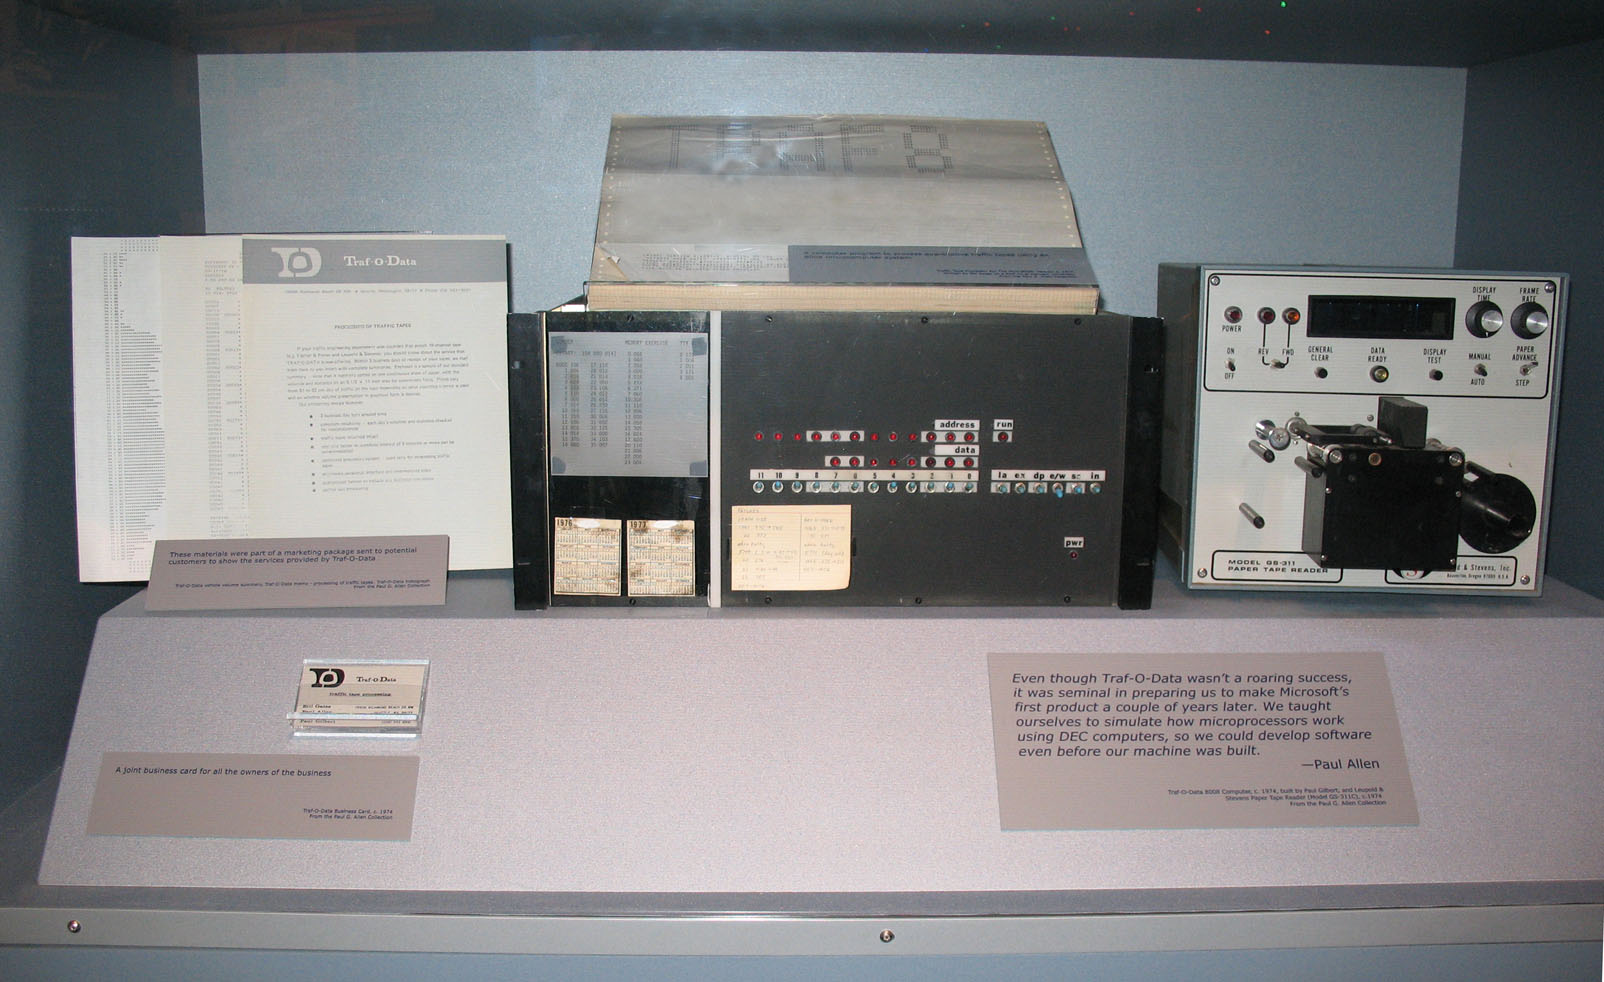 """Bill Gates and Paul Allen's Traf-O-Data computer built by Paul Gilbert in 1974. On display at the """"STARTUP: Albuquerque and the Personal Computer Revolution"""", New Mexico Museum of Natural History and Science. Photo by Michael Holley, April 2007."""